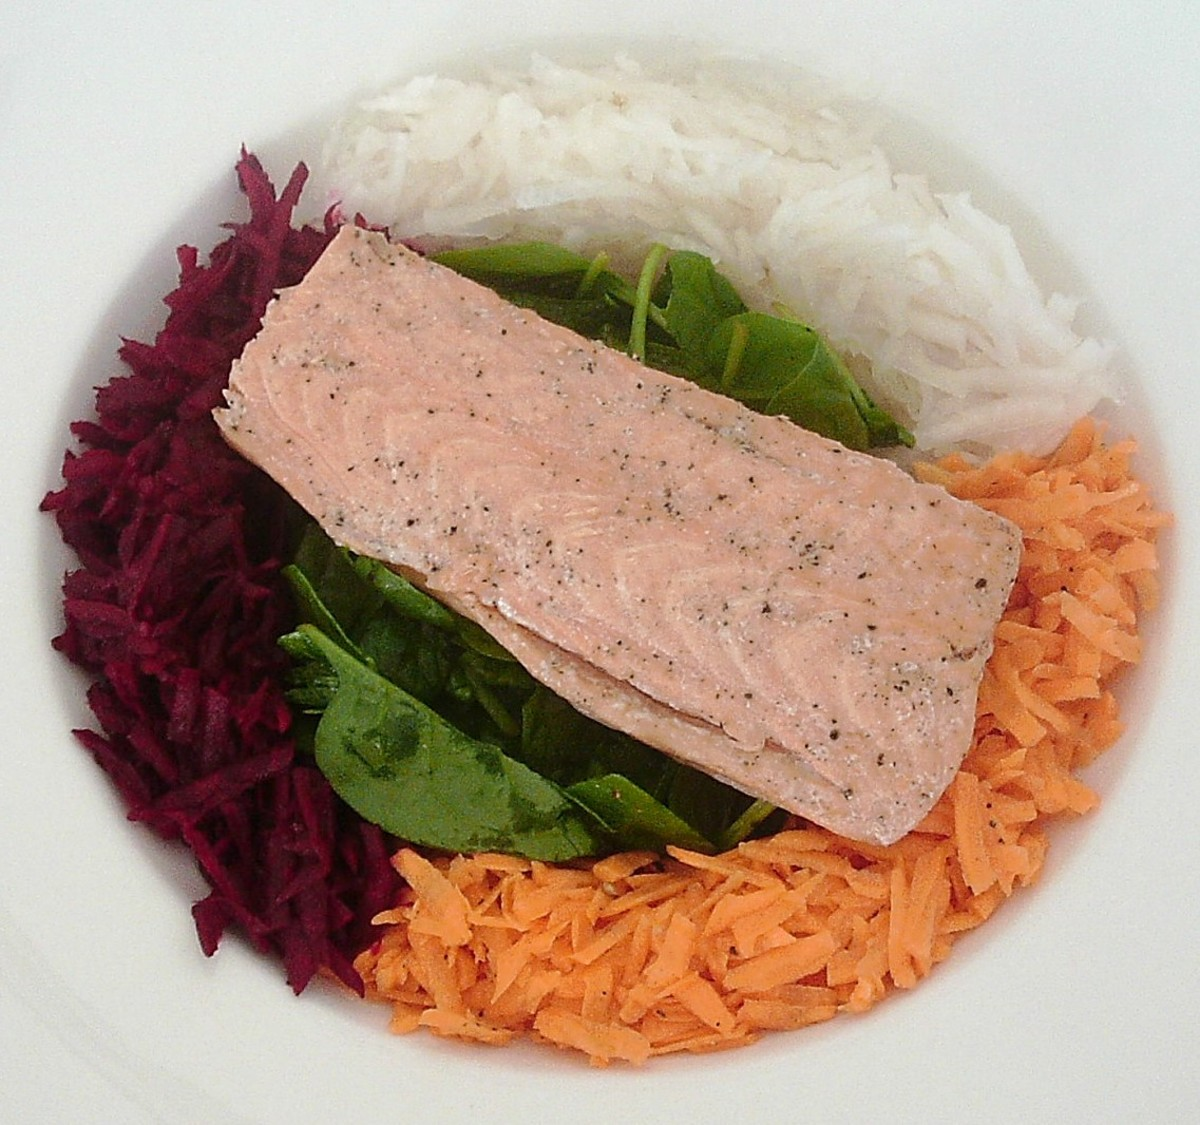 White turnip, beetroot and spinach hot smoked salmon salad